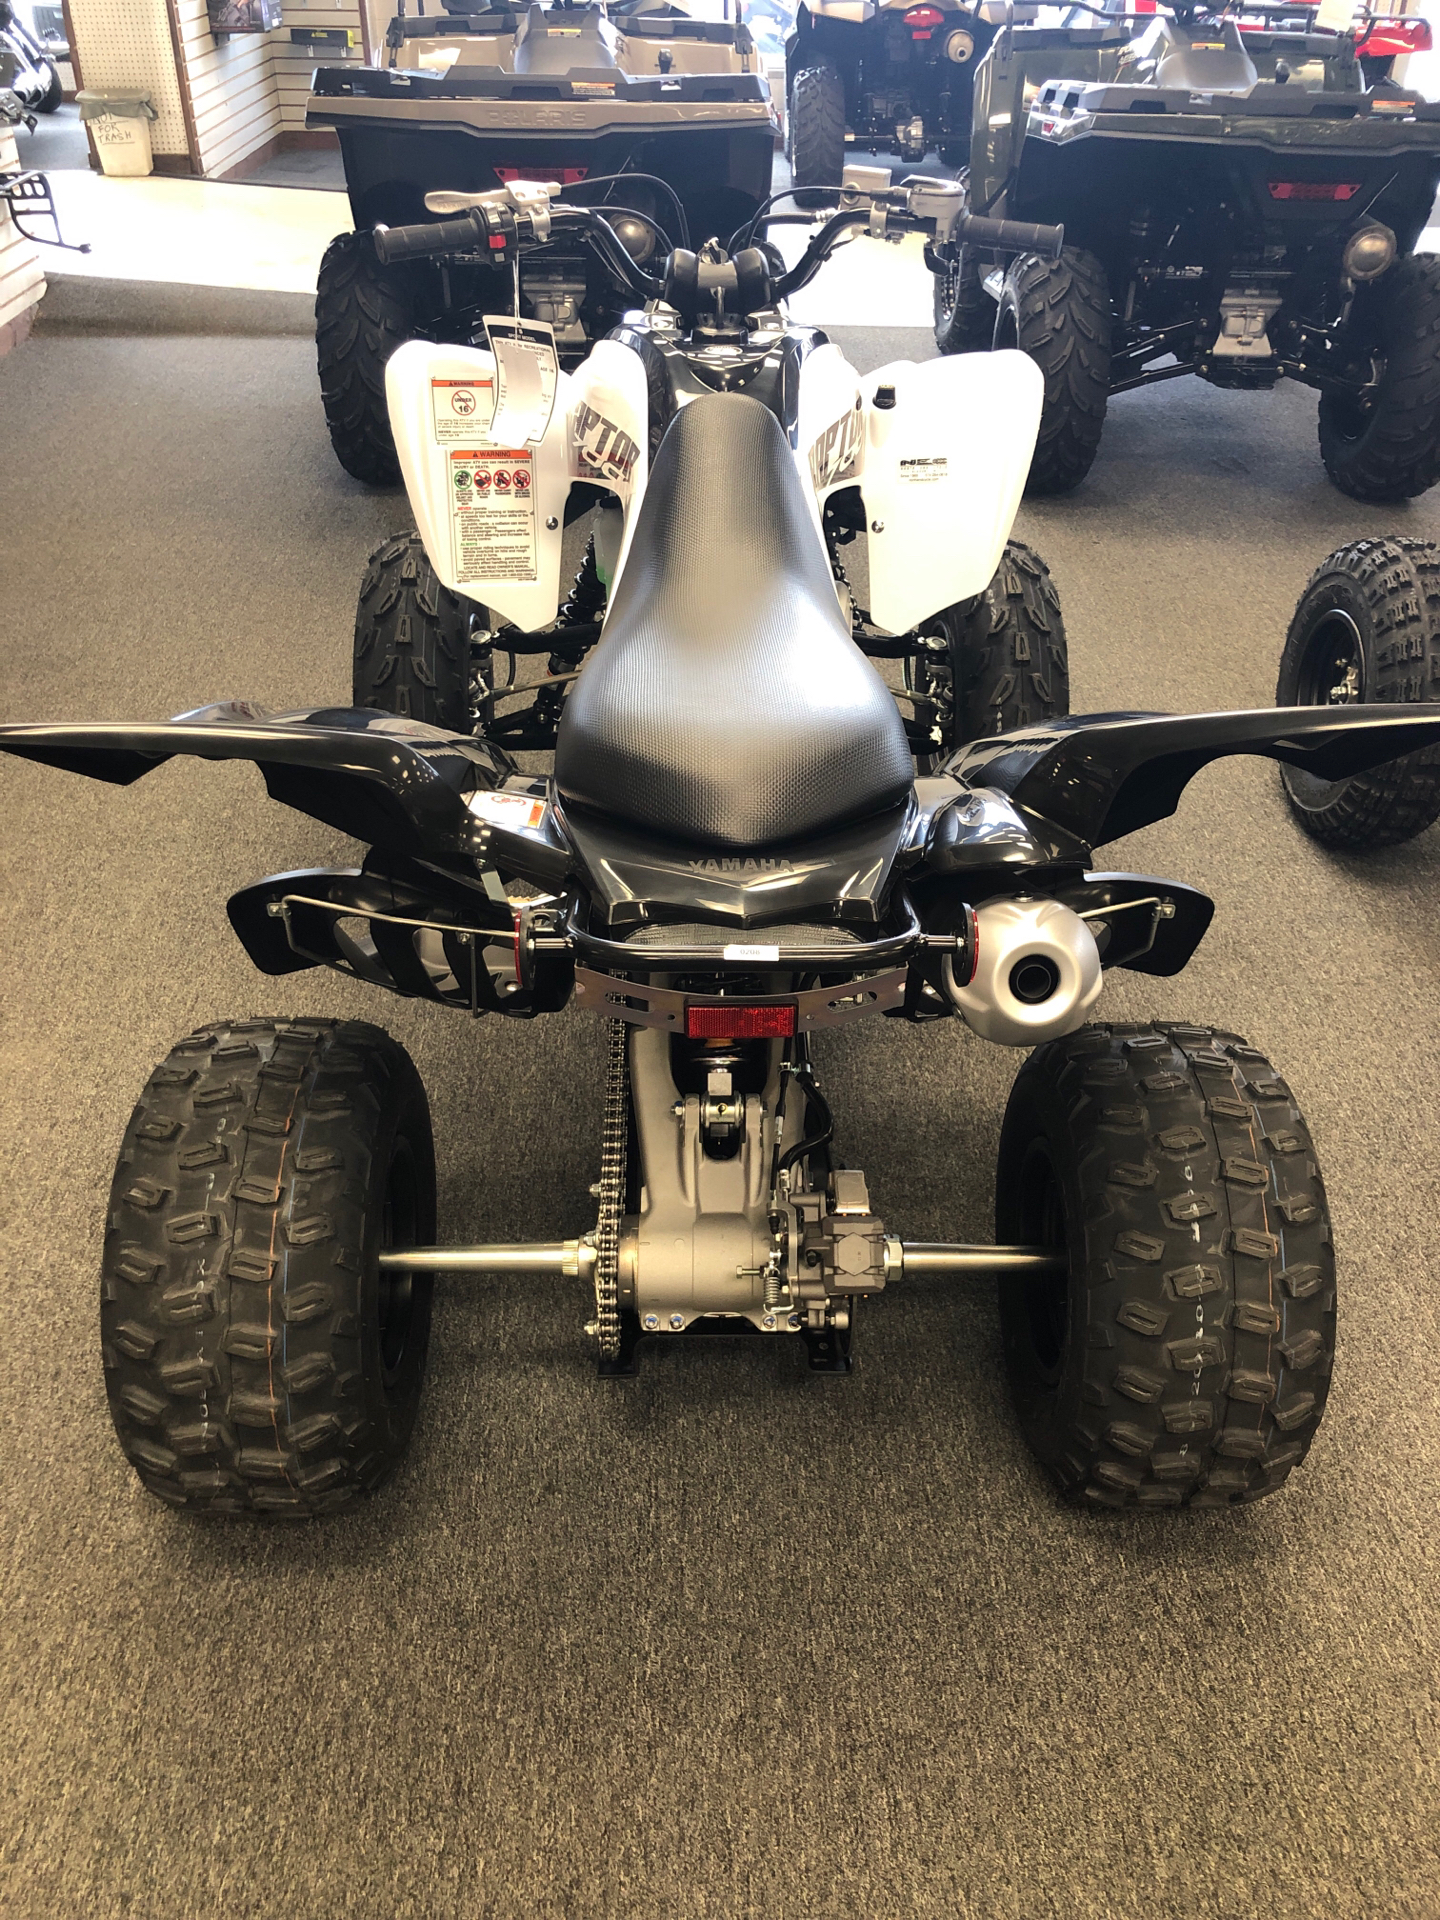 2020 Yamaha Raptor 700 in Elkhart, Indiana - Photo 4